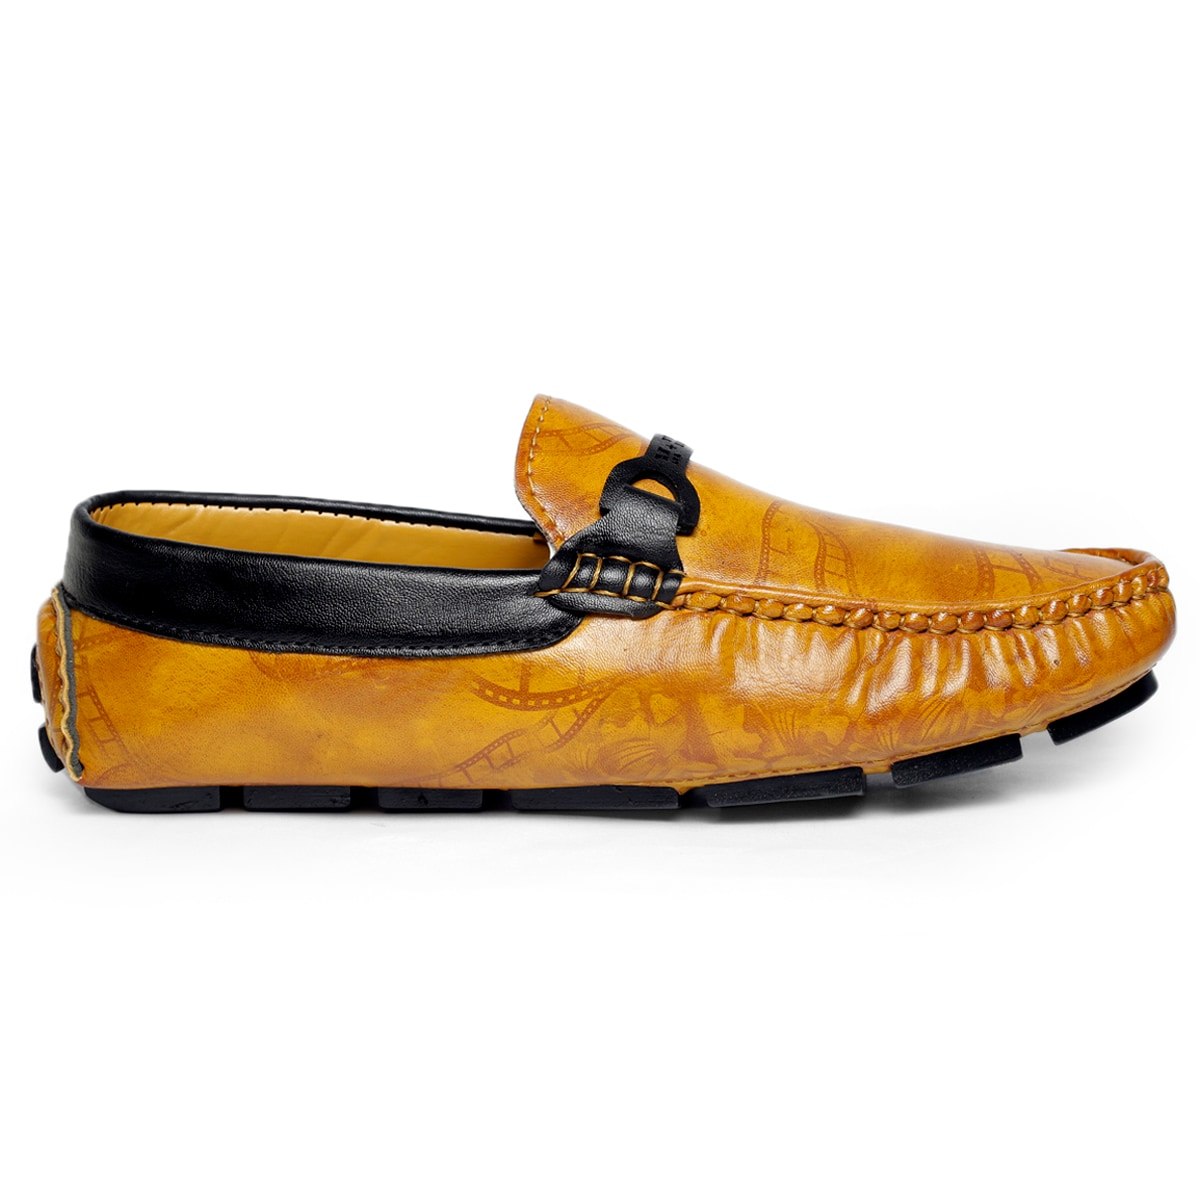 JK PORT COMFORTABLE, FASHIONABLE AND TRENDY LOAFERS JKPLF055TAN (TAN,6-10,8 PAIR)